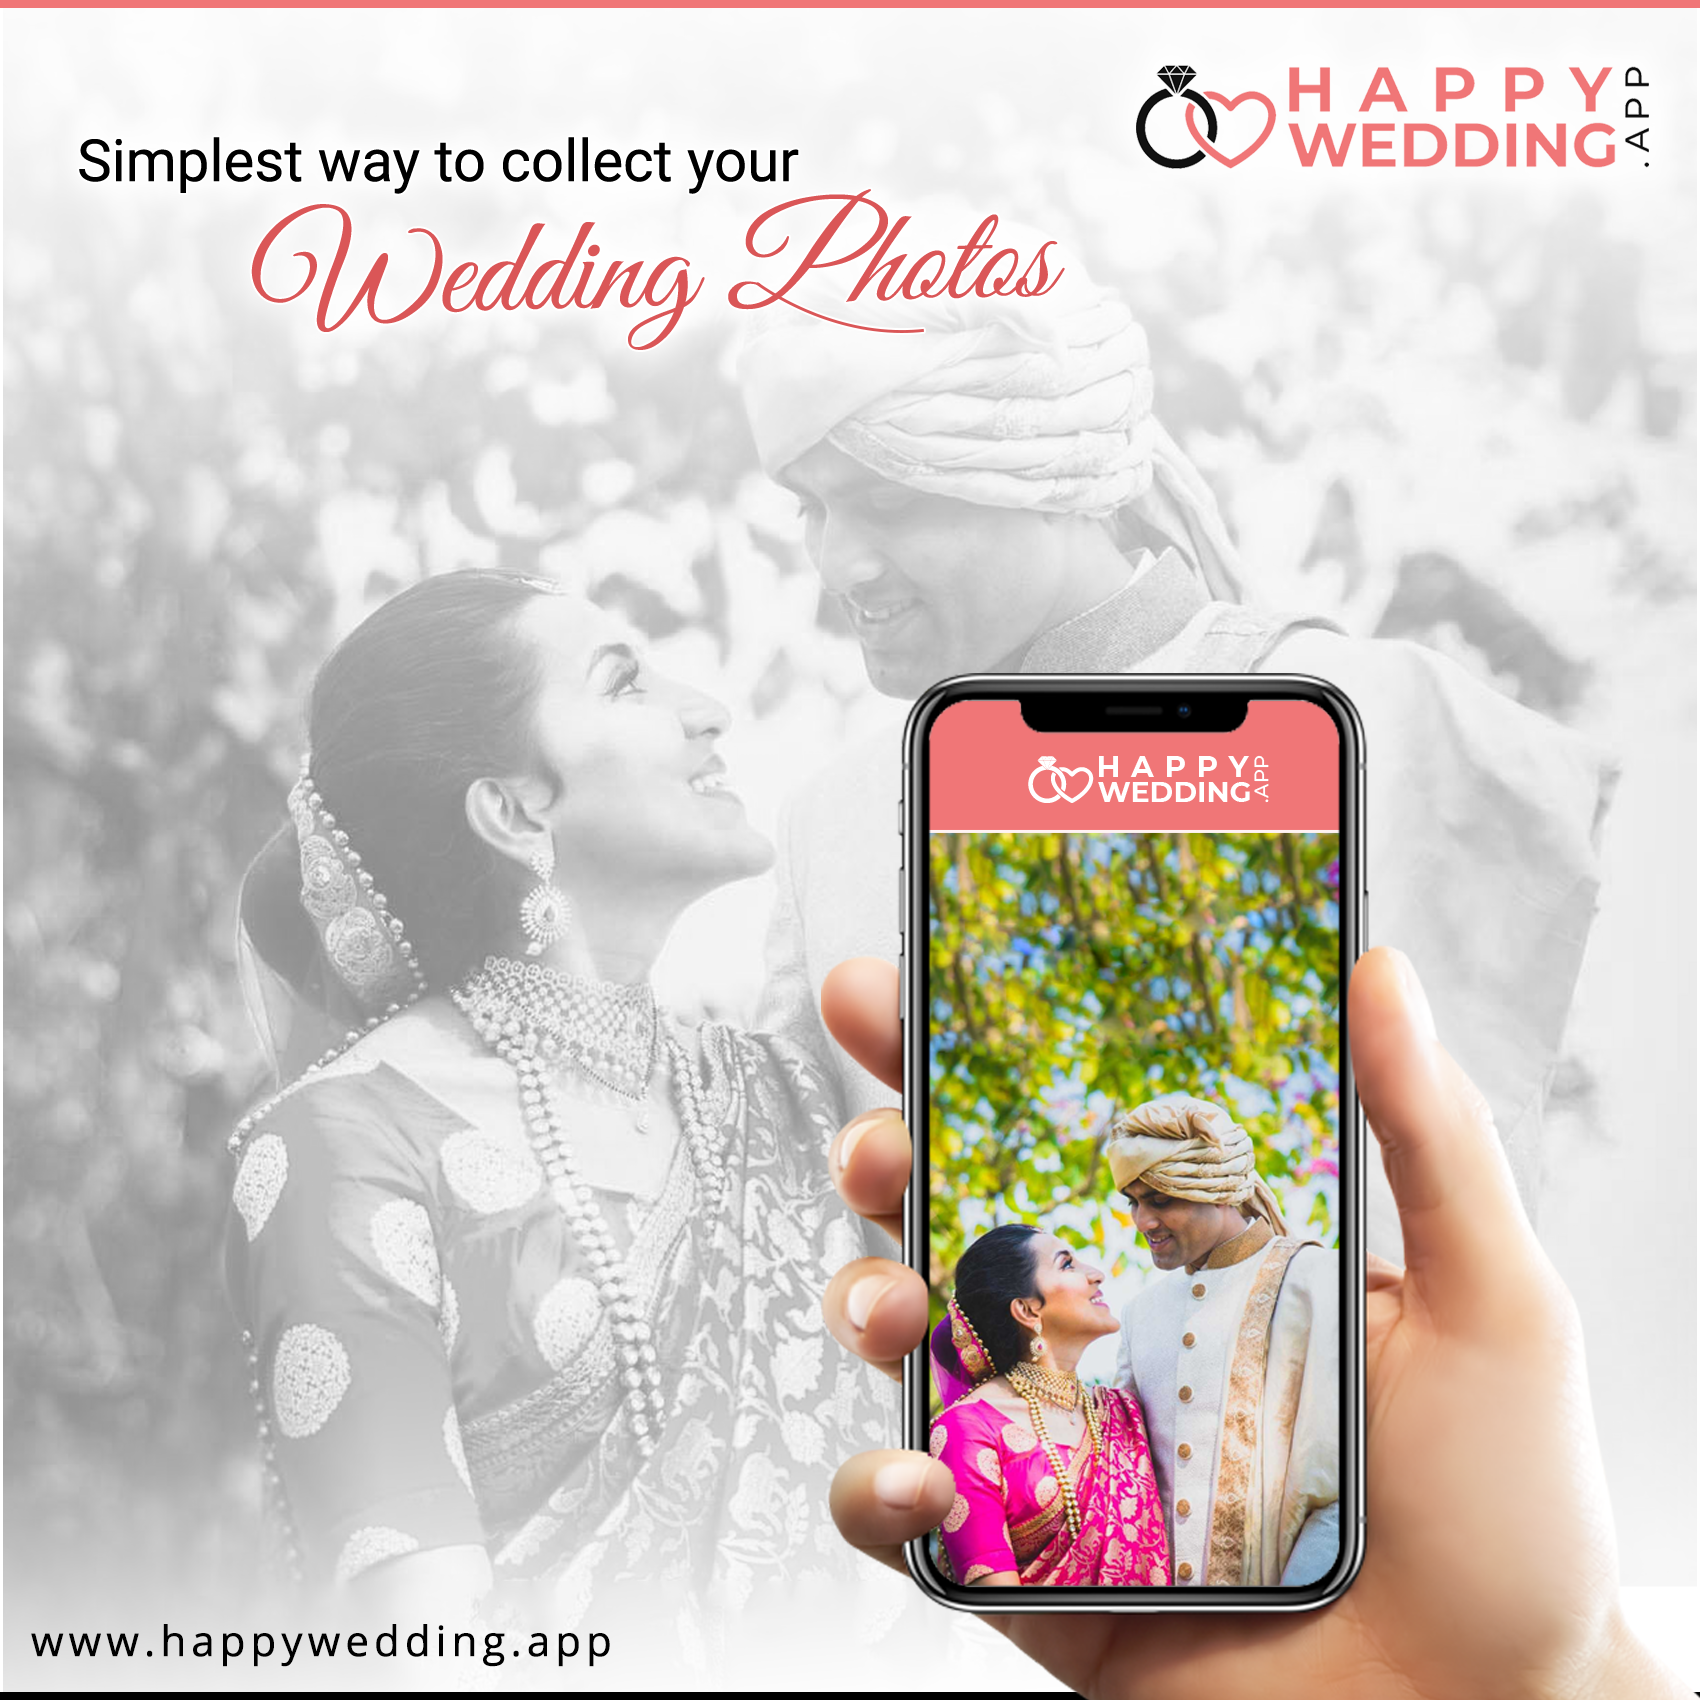 Wedding Photo Album Wedding Photo App Wedding Album Digital Weddings